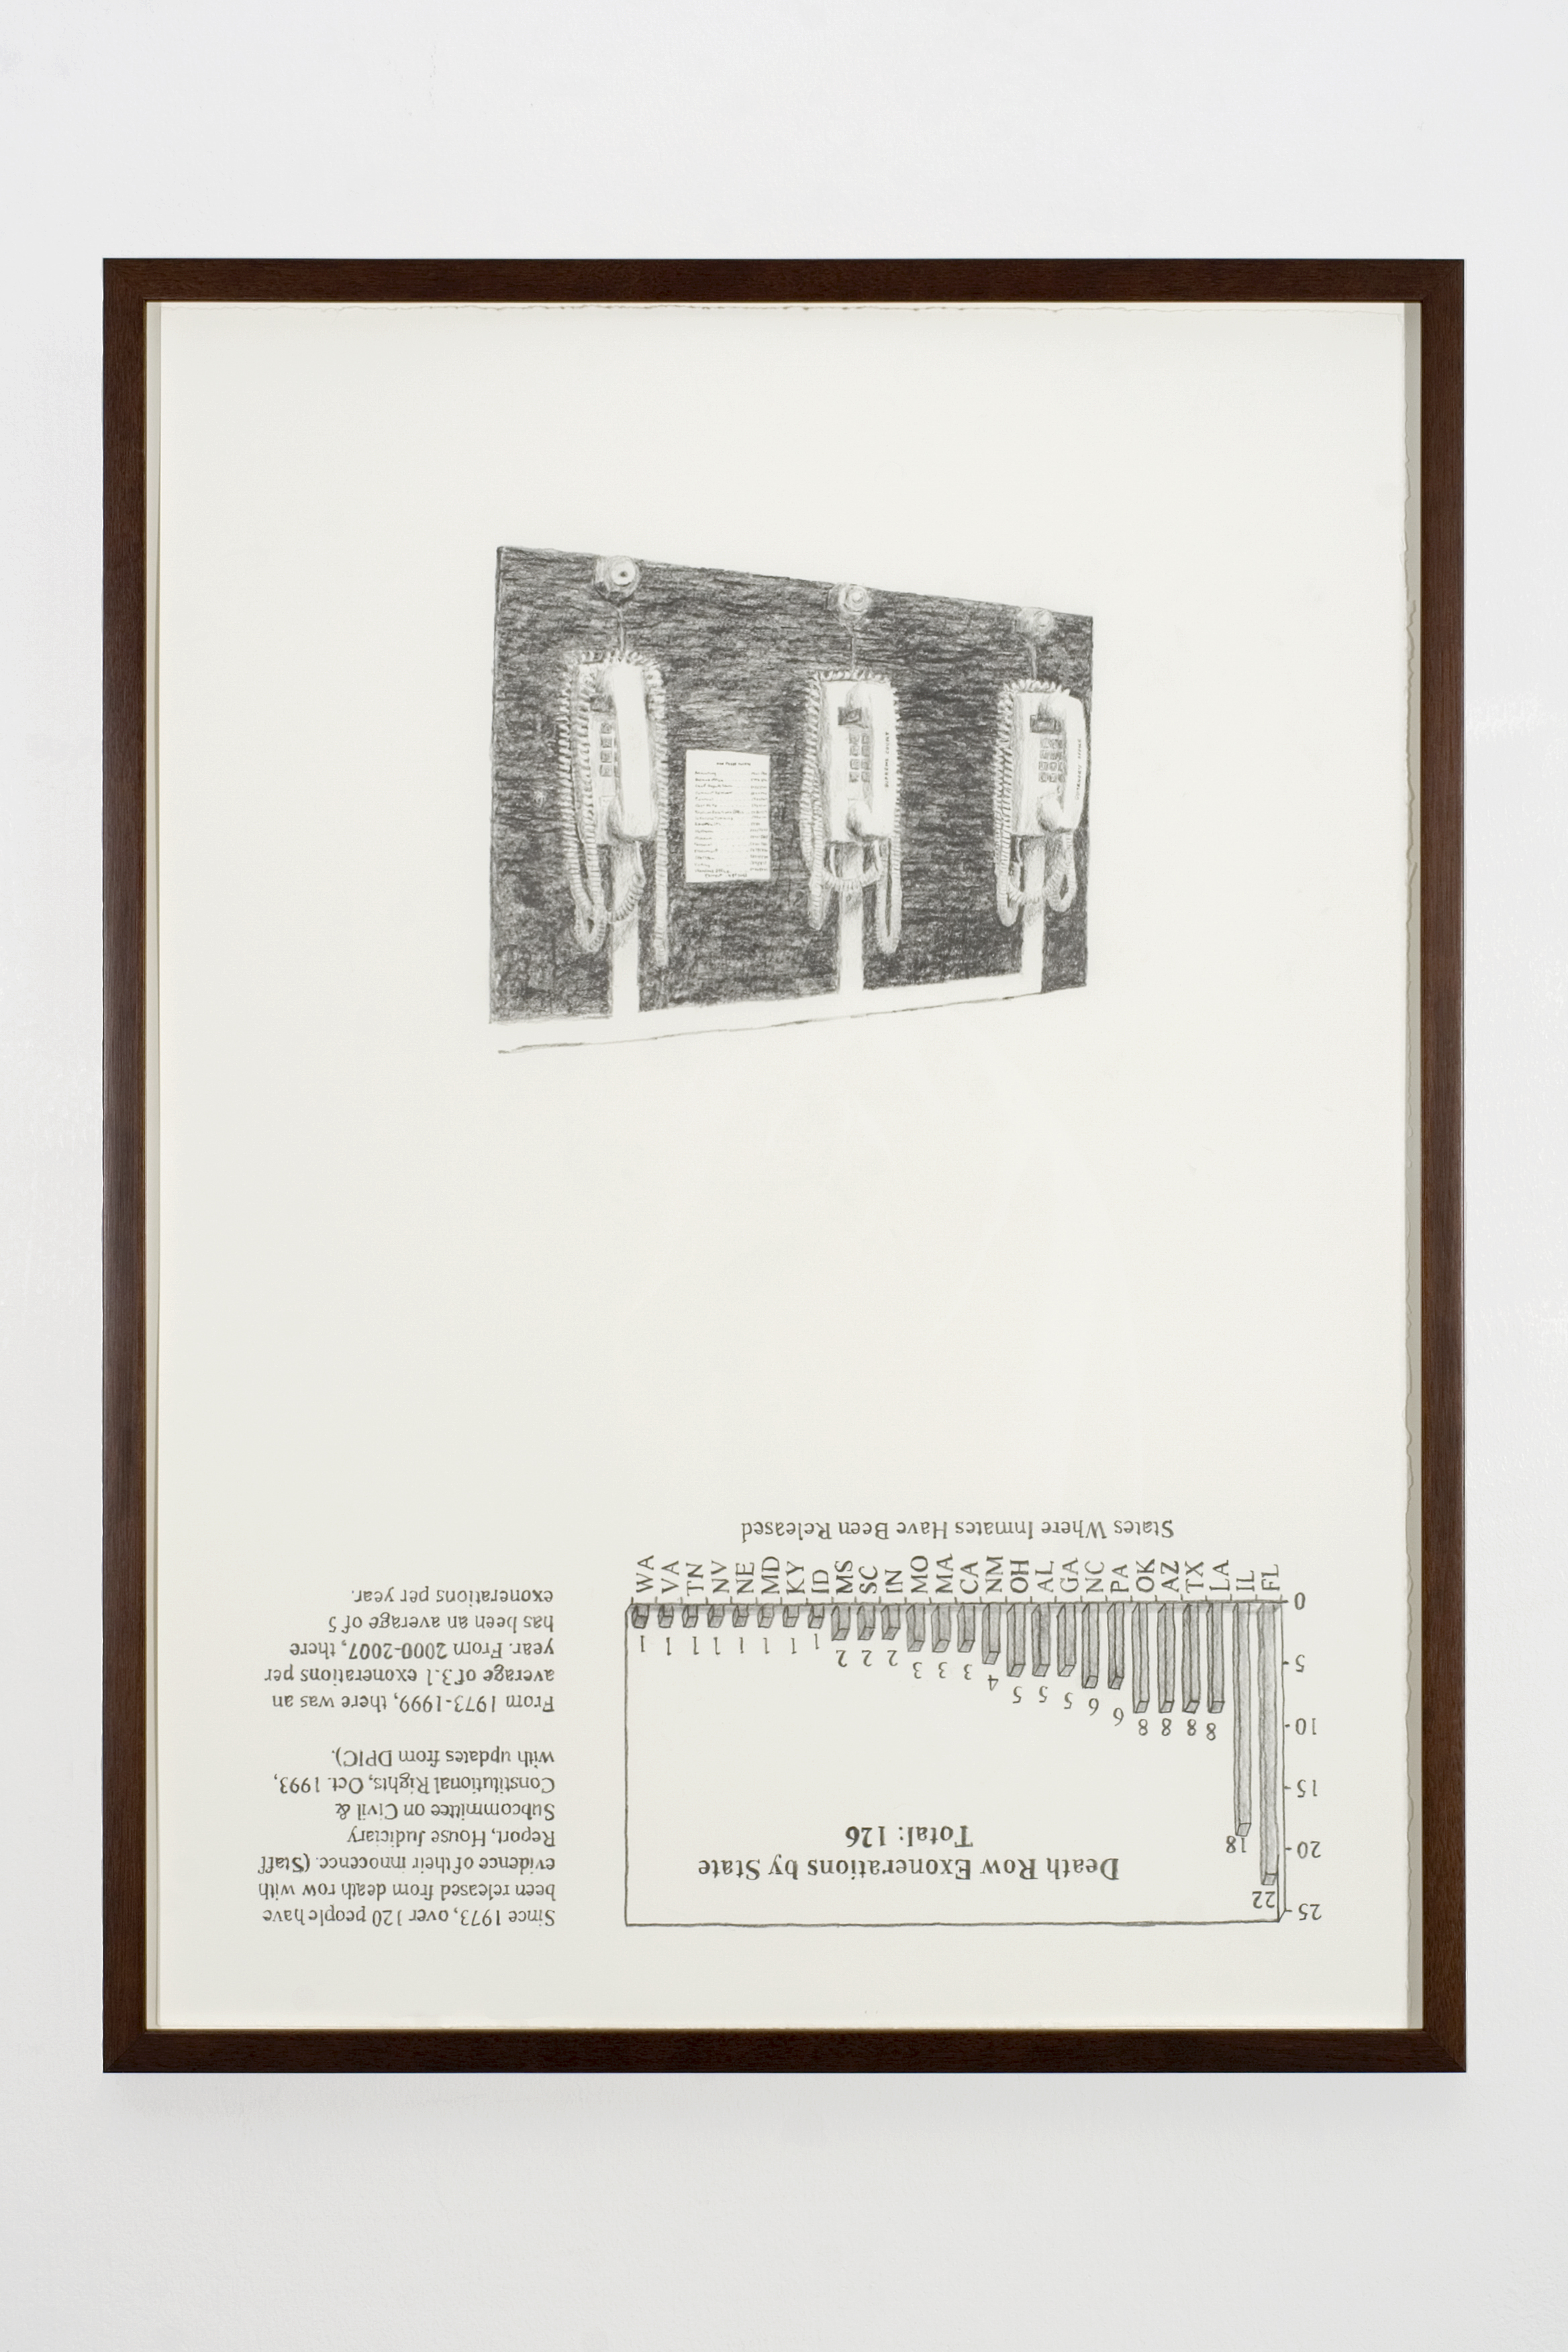 Death Row Exonerations, 2008 graphite on paper 81 x 61 cm - 32 x 24 inches (framed)